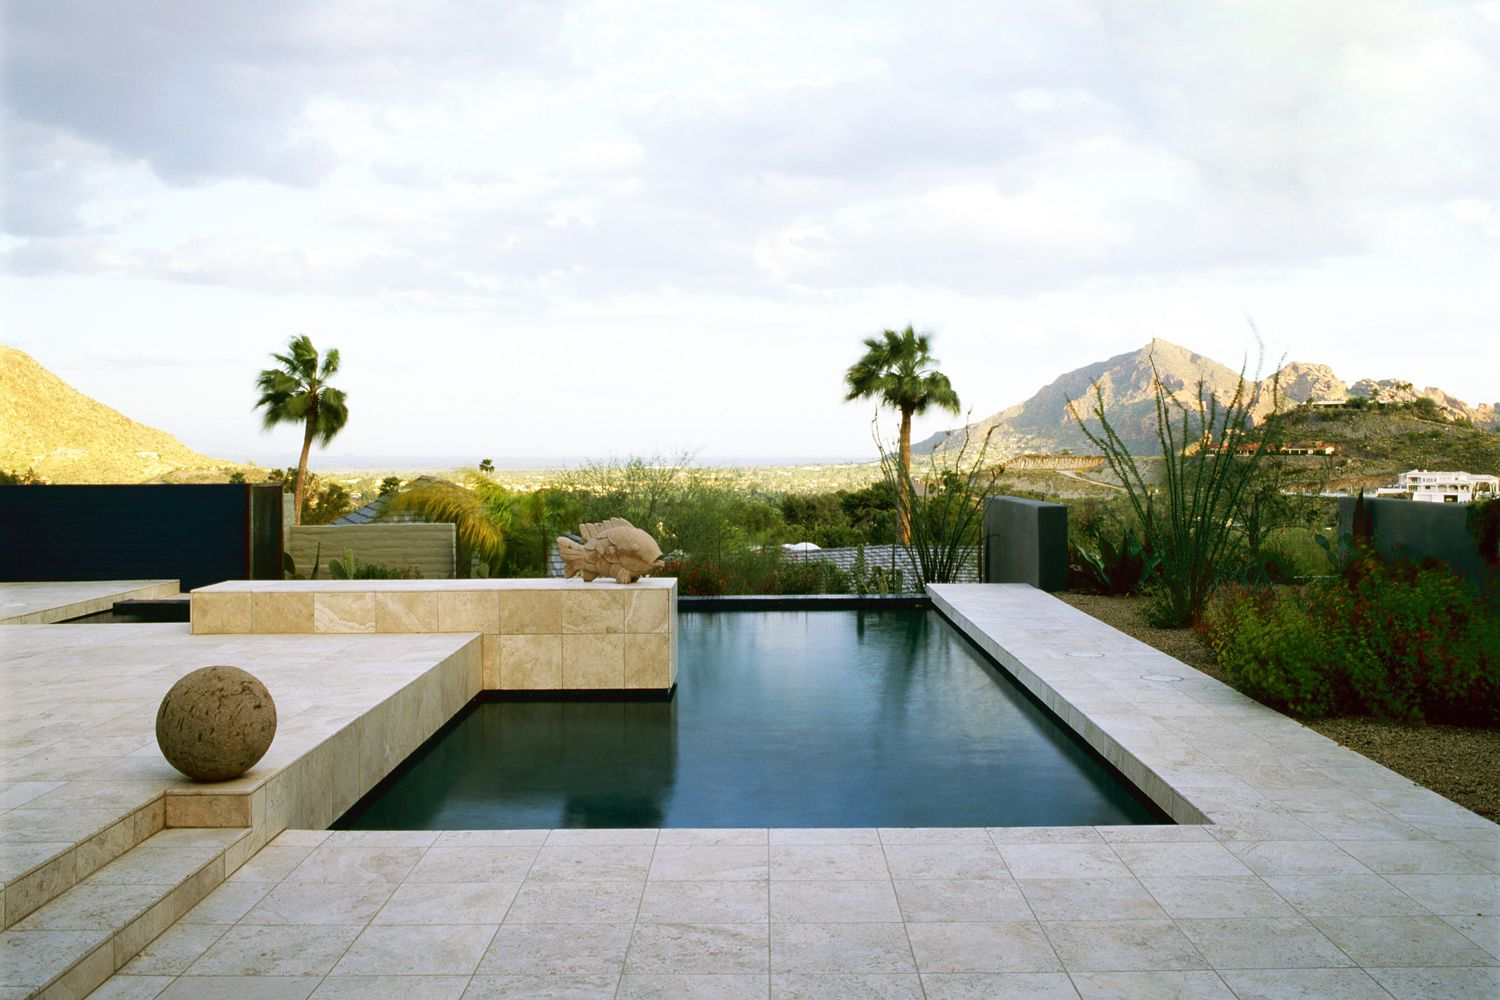 Tips for residential swimming pool construction for Building a pool